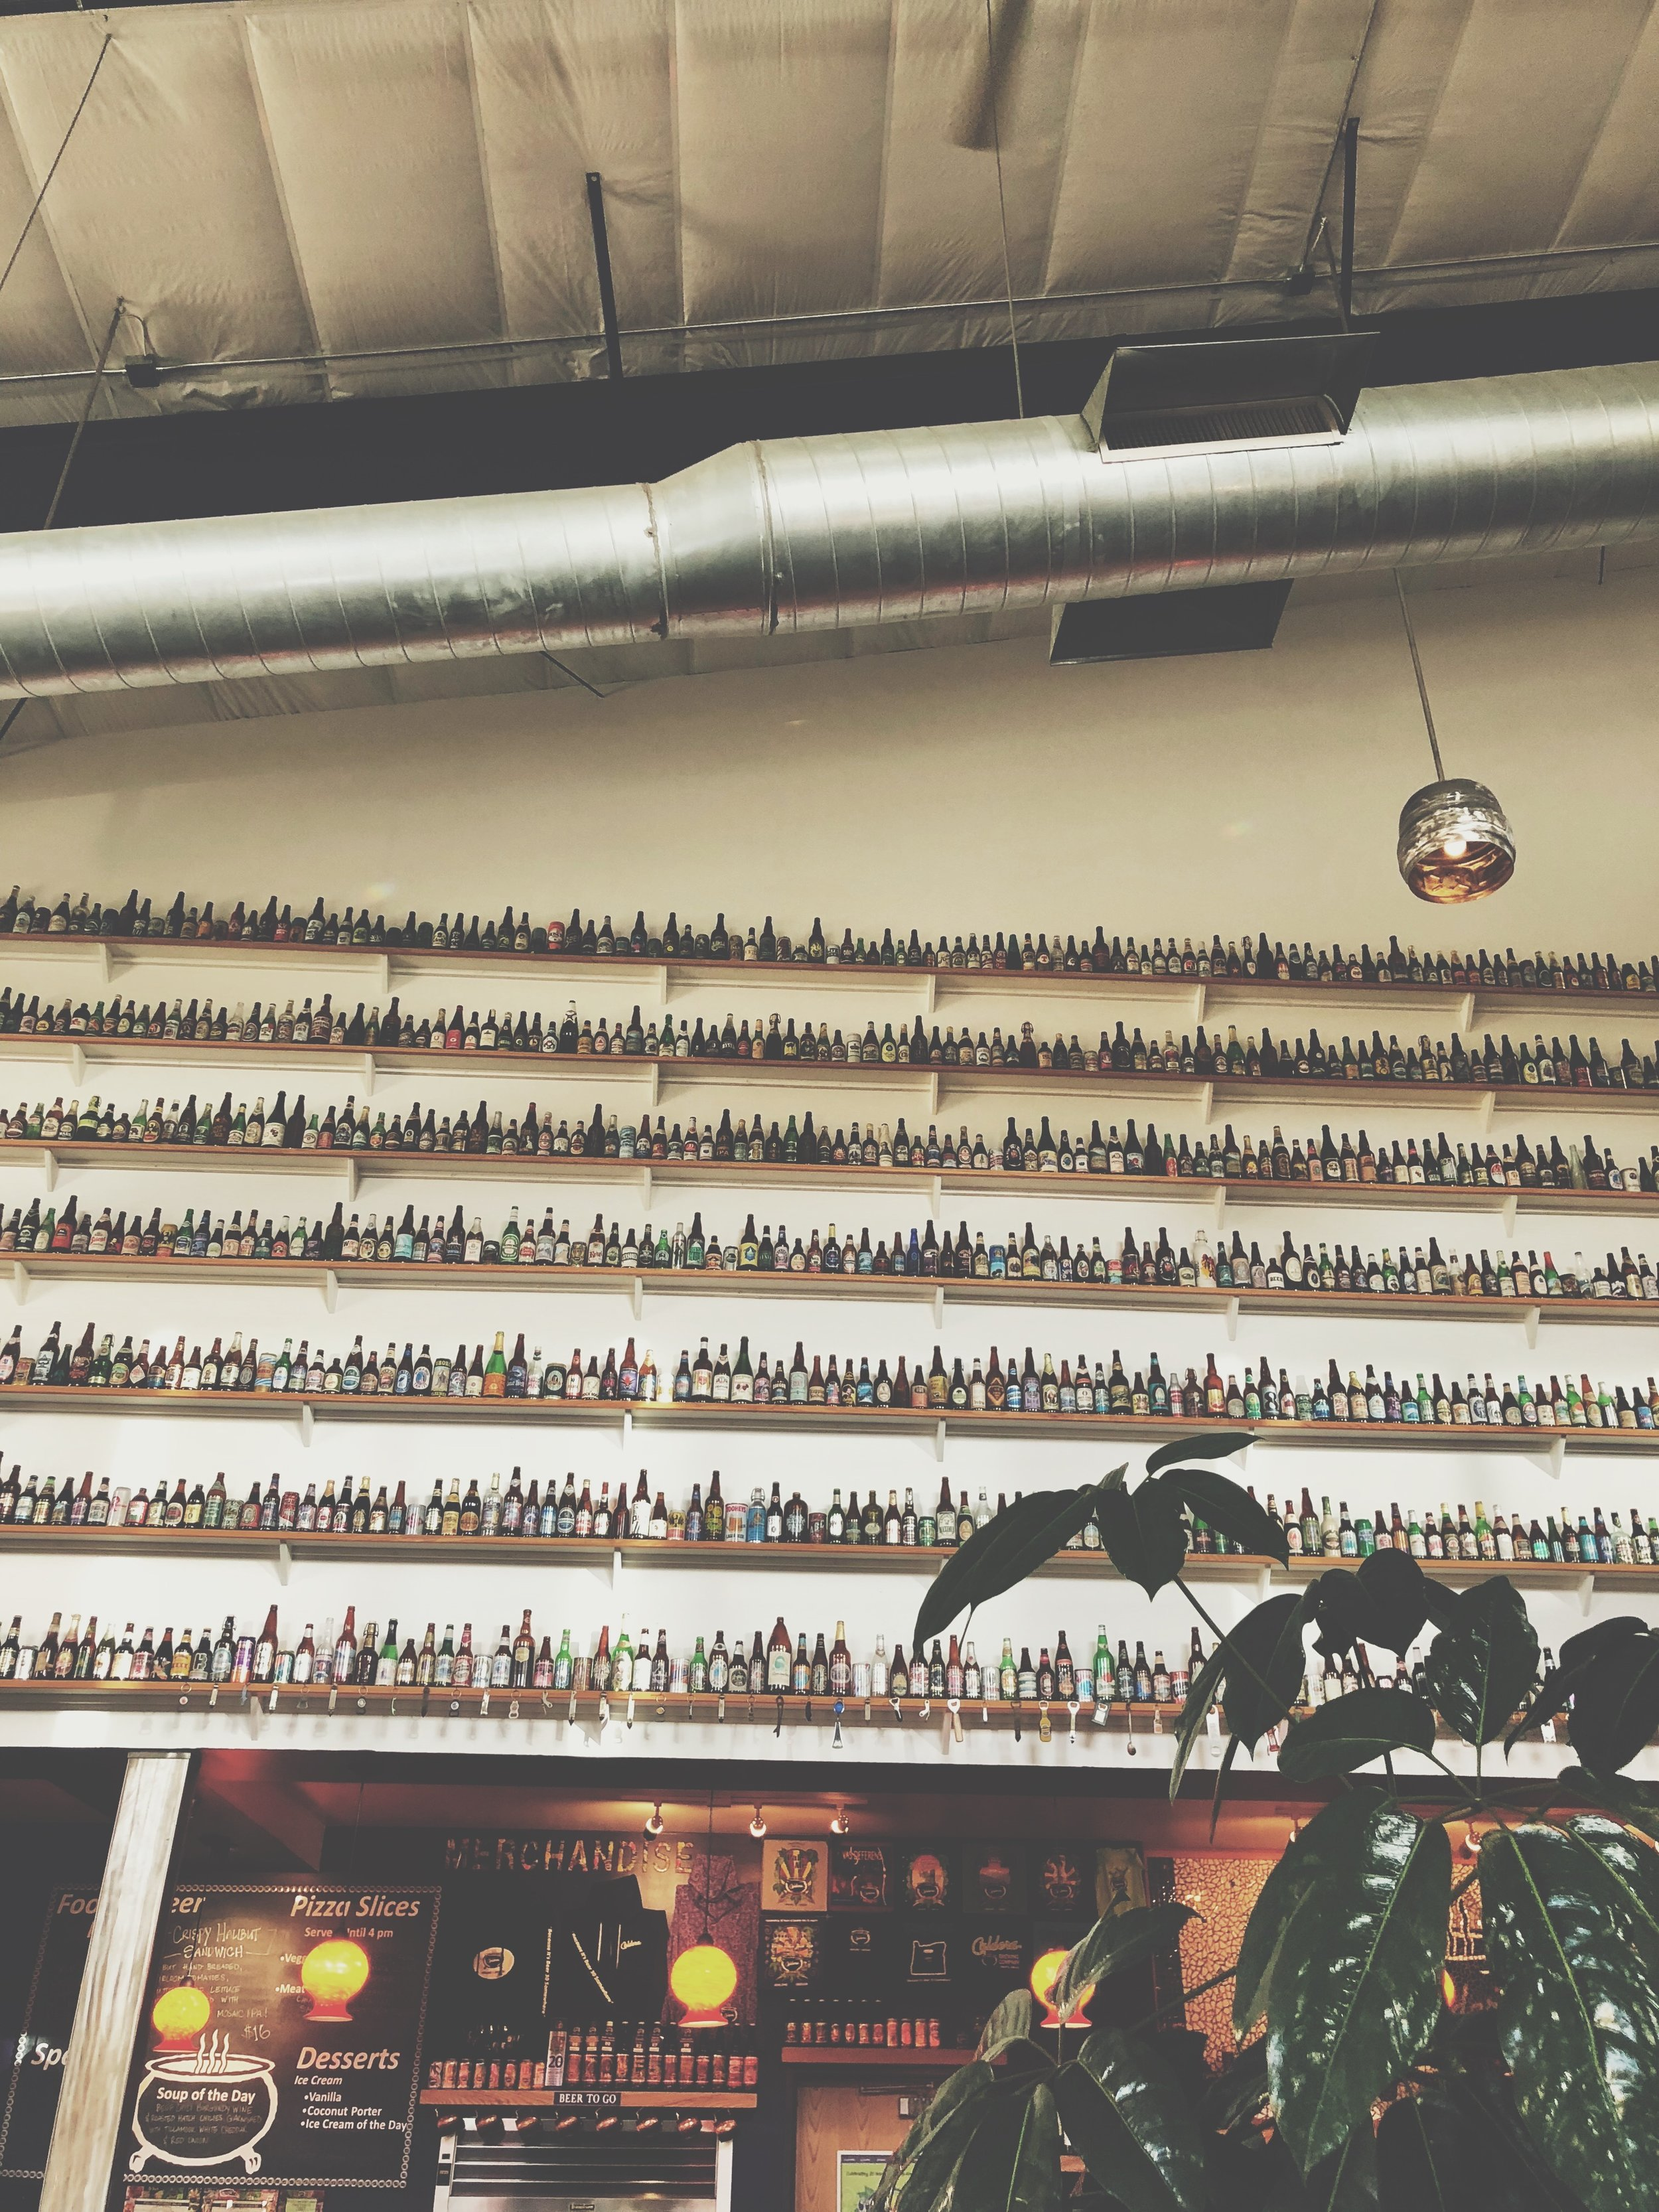 First night was spent at Caldera Brewing. I loved all the beer bottles lining the walls.